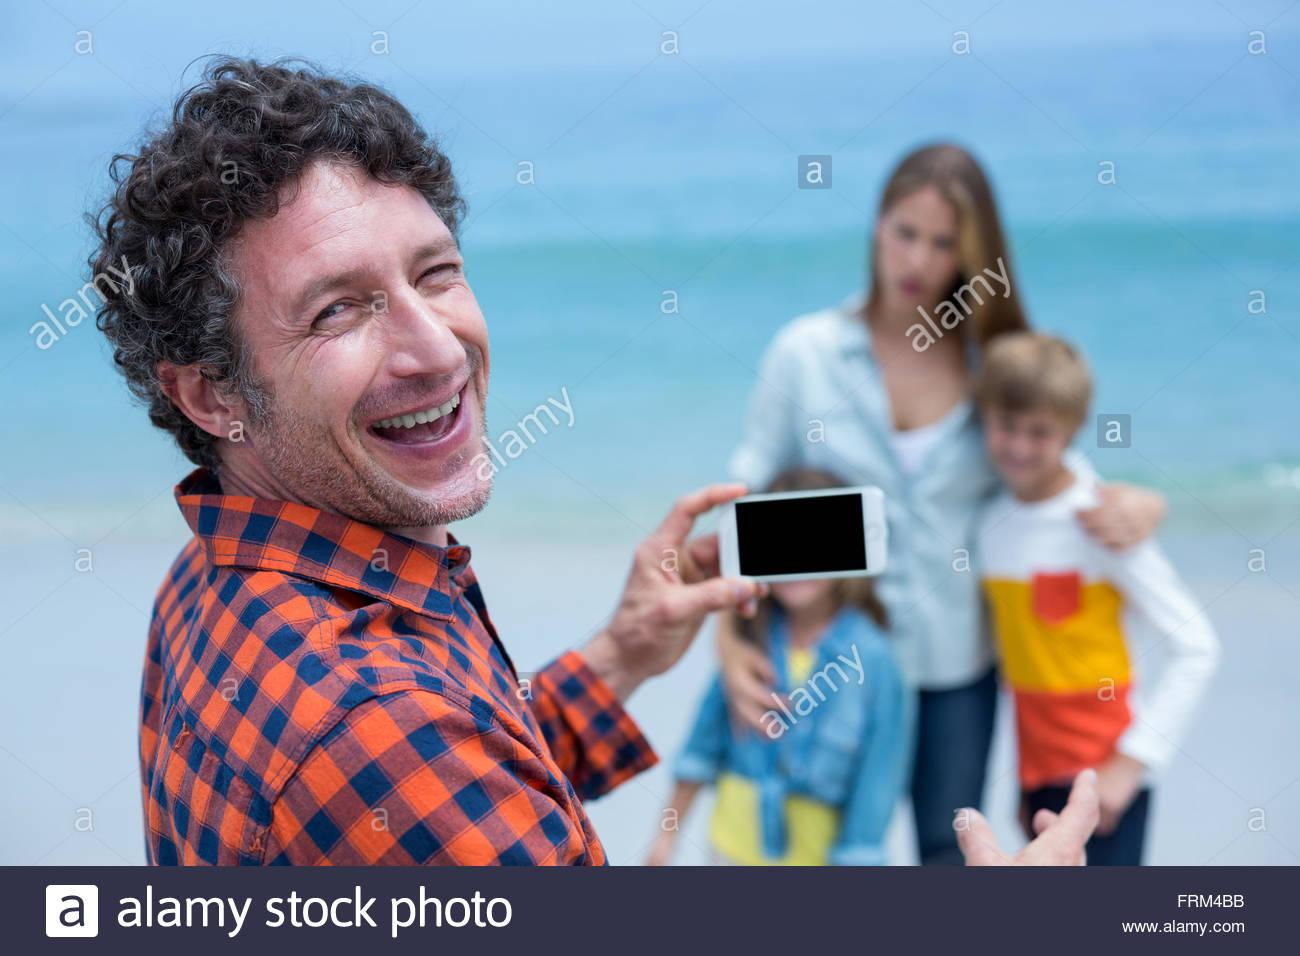 Happy father photographing family with cellphone at beach Stock Photo -  Alamy